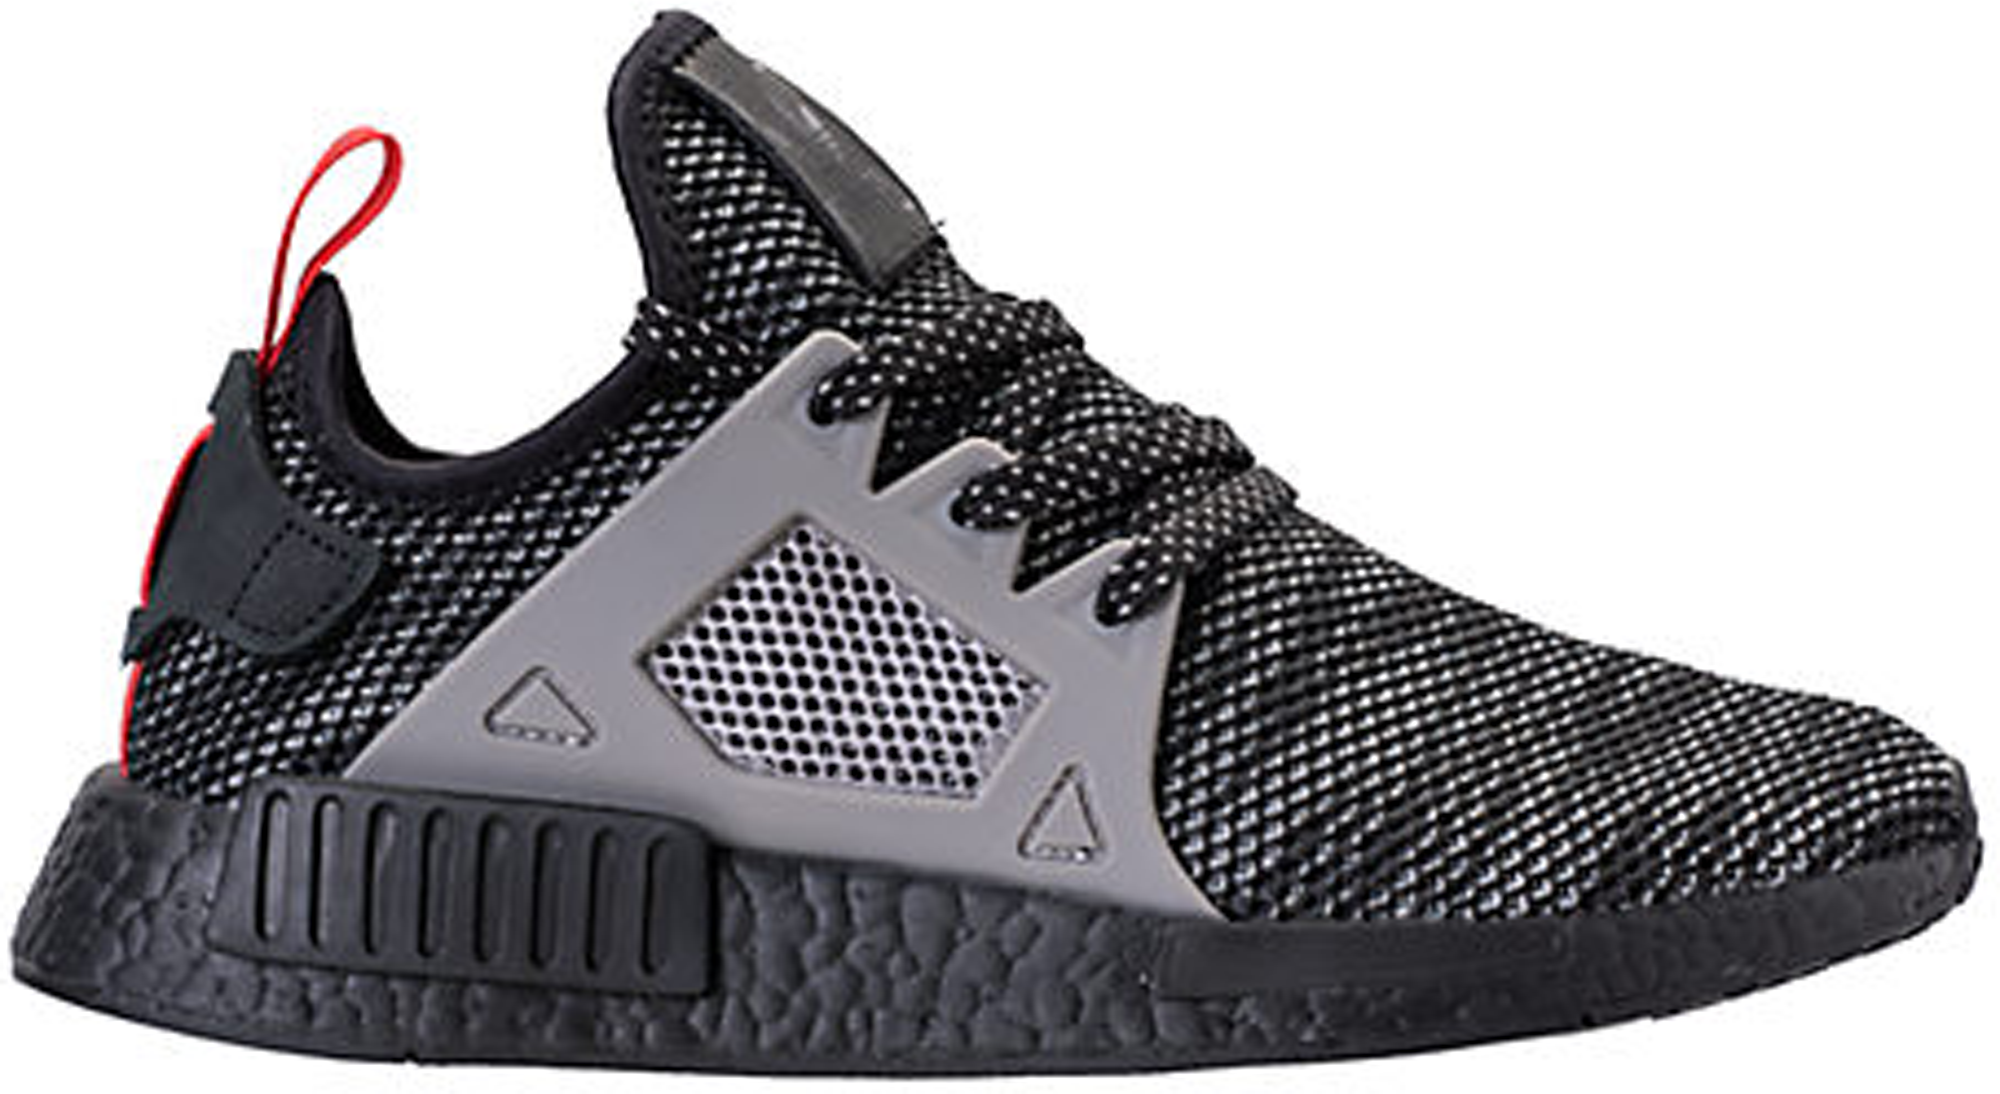 finest selection 6a068 0b655 Nmd Xr1 Undisputed Jd Sports in Core Black/Soft Grey/Footwear White